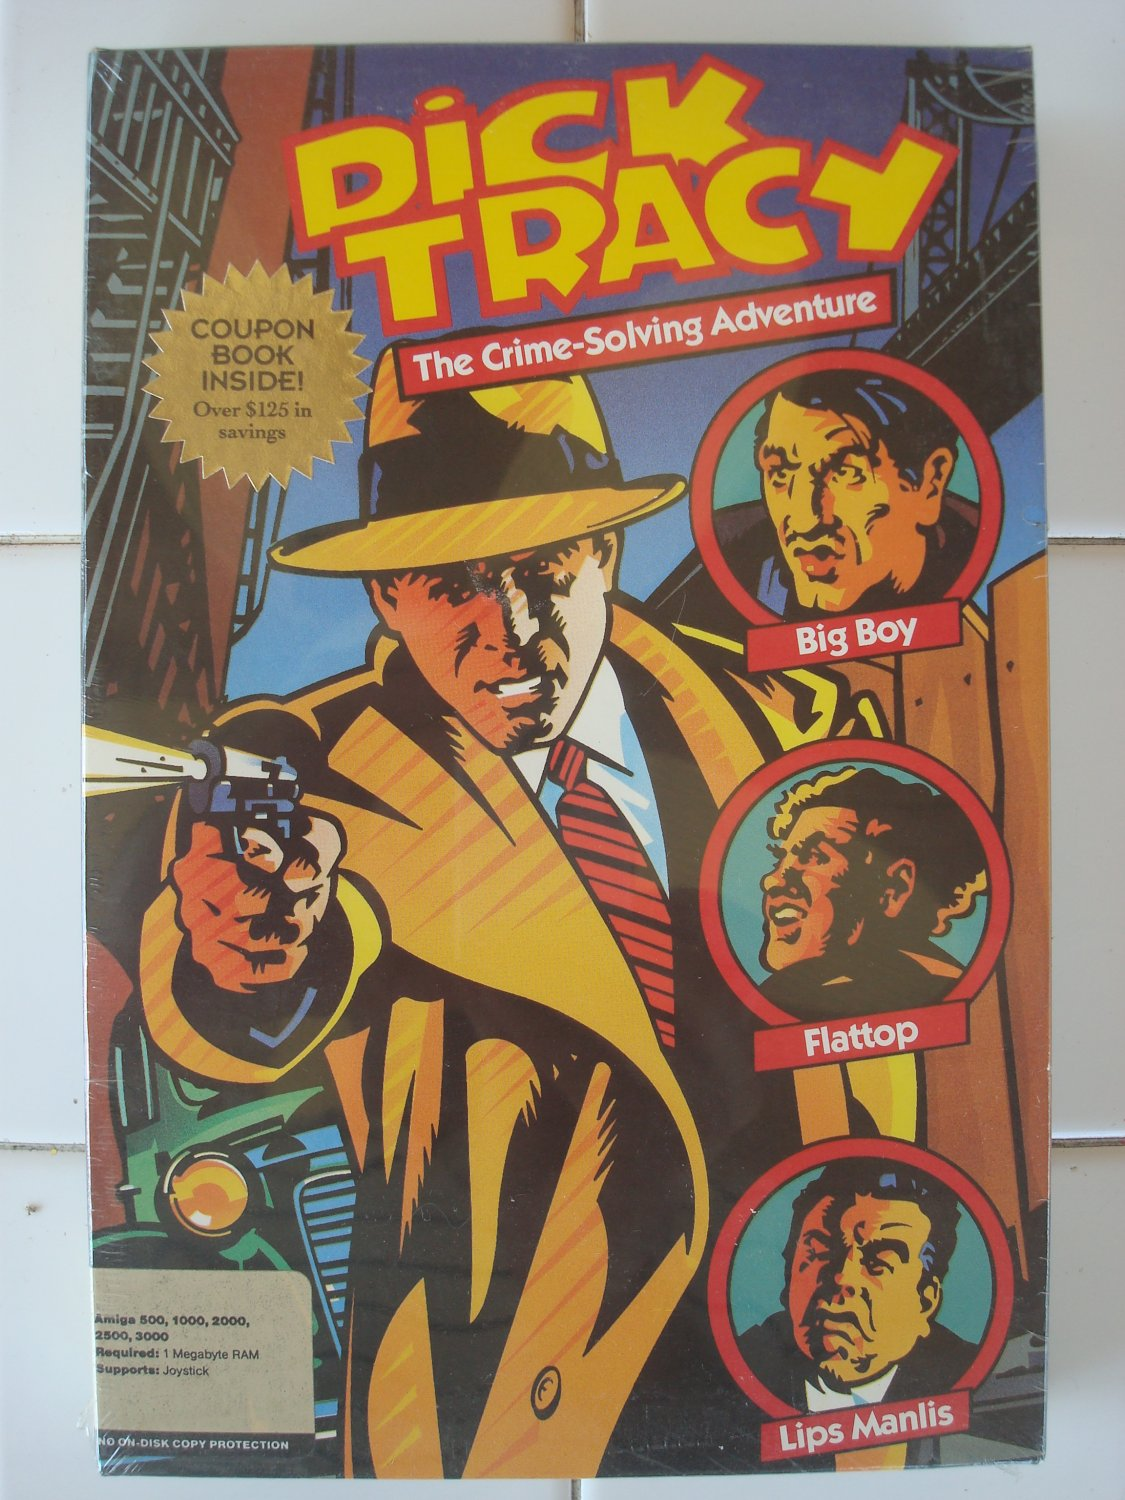 Dick Tracy For Commodore Amiga, NEW FACTORY SEALED, Disney